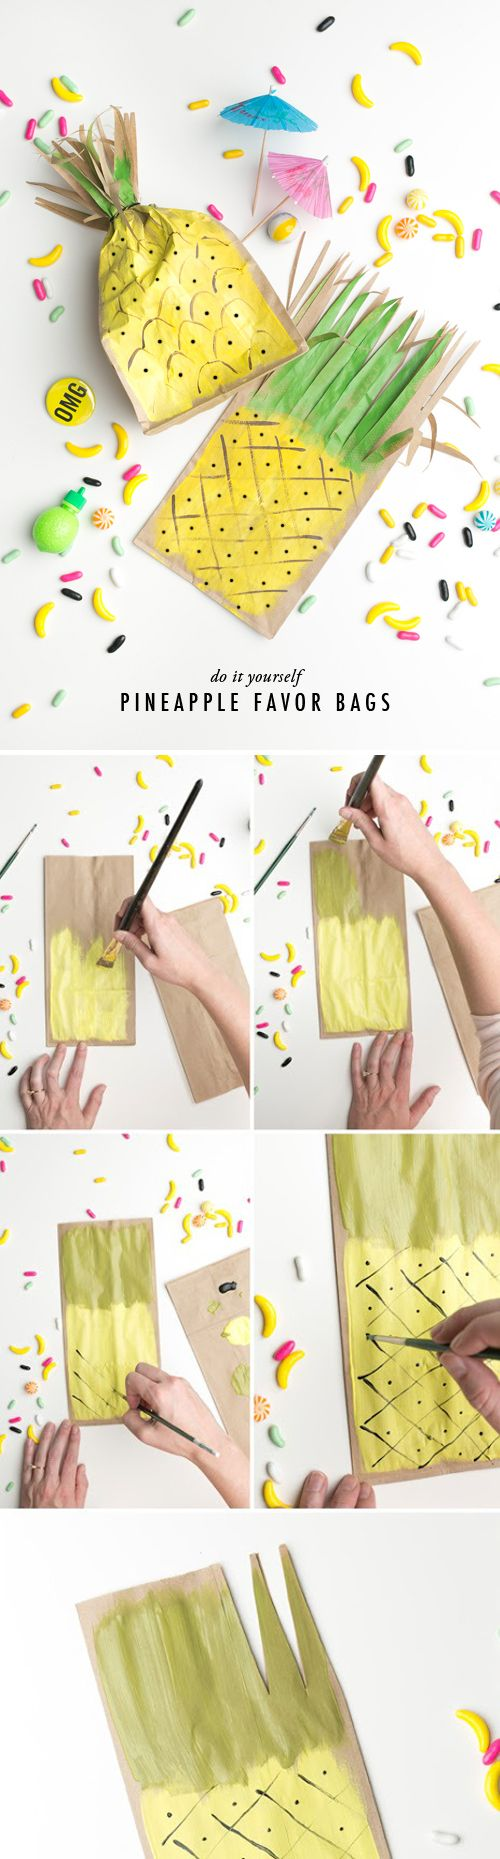 Pineapple favor bags. ❤️⭐️ . ✯ Visit lifespiritssocietyofmagick.com for love spells, wealth spells, healing spells, and LOA info.